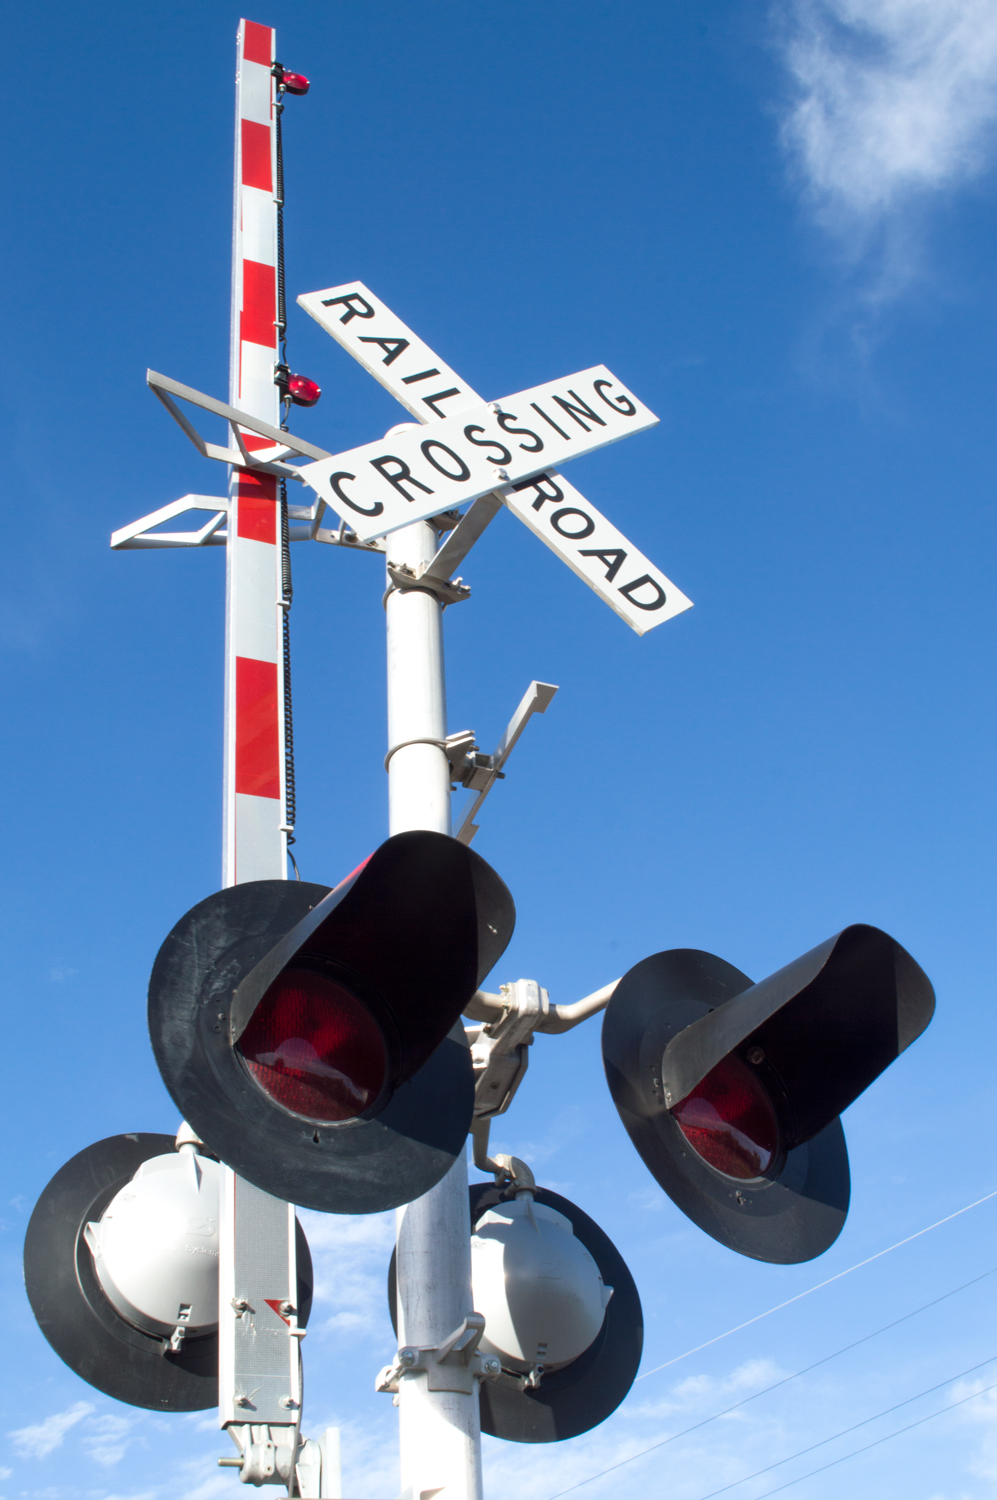 Rail Road Crossing    Nikon D3200 • Nikon 18-55mm lens • 24mm • F/22 • 1/40s • ISO 100